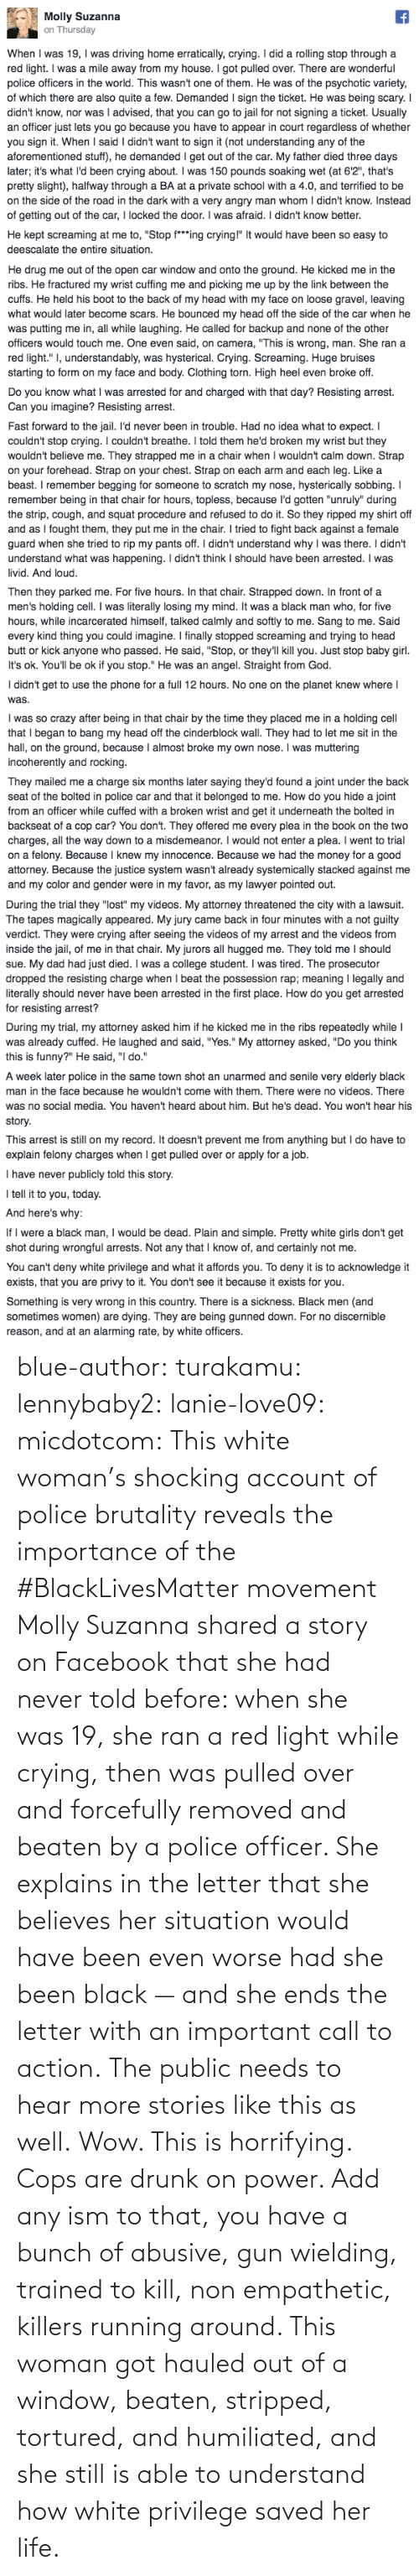 Race: blue-author: turakamu:  lennybaby2:  lanie-love09:  micdotcom:  This white woman's shocking account of police brutality reveals the importance of the #BlackLivesMatter movement Molly Suzanna shared a story on Facebook that she had never told before: when she was 19, she ran a red light while crying, then was pulled over and forcefully removed and beaten by a police officer. She explains in the letter that she believes her situation would have been even worse had she been black — and she ends the letter with an important call to action.  The public needs to hear more stories like this as well.  Wow. This is horrifying.  Cops are drunk on power. Add any ism to that, you have a bunch of abusive, gun wielding, trained to kill, non empathetic, killers running around.    This woman got hauled out of a window, beaten, stripped, tortured, and humiliated, and she still is able to understand how white privilege saved her life.